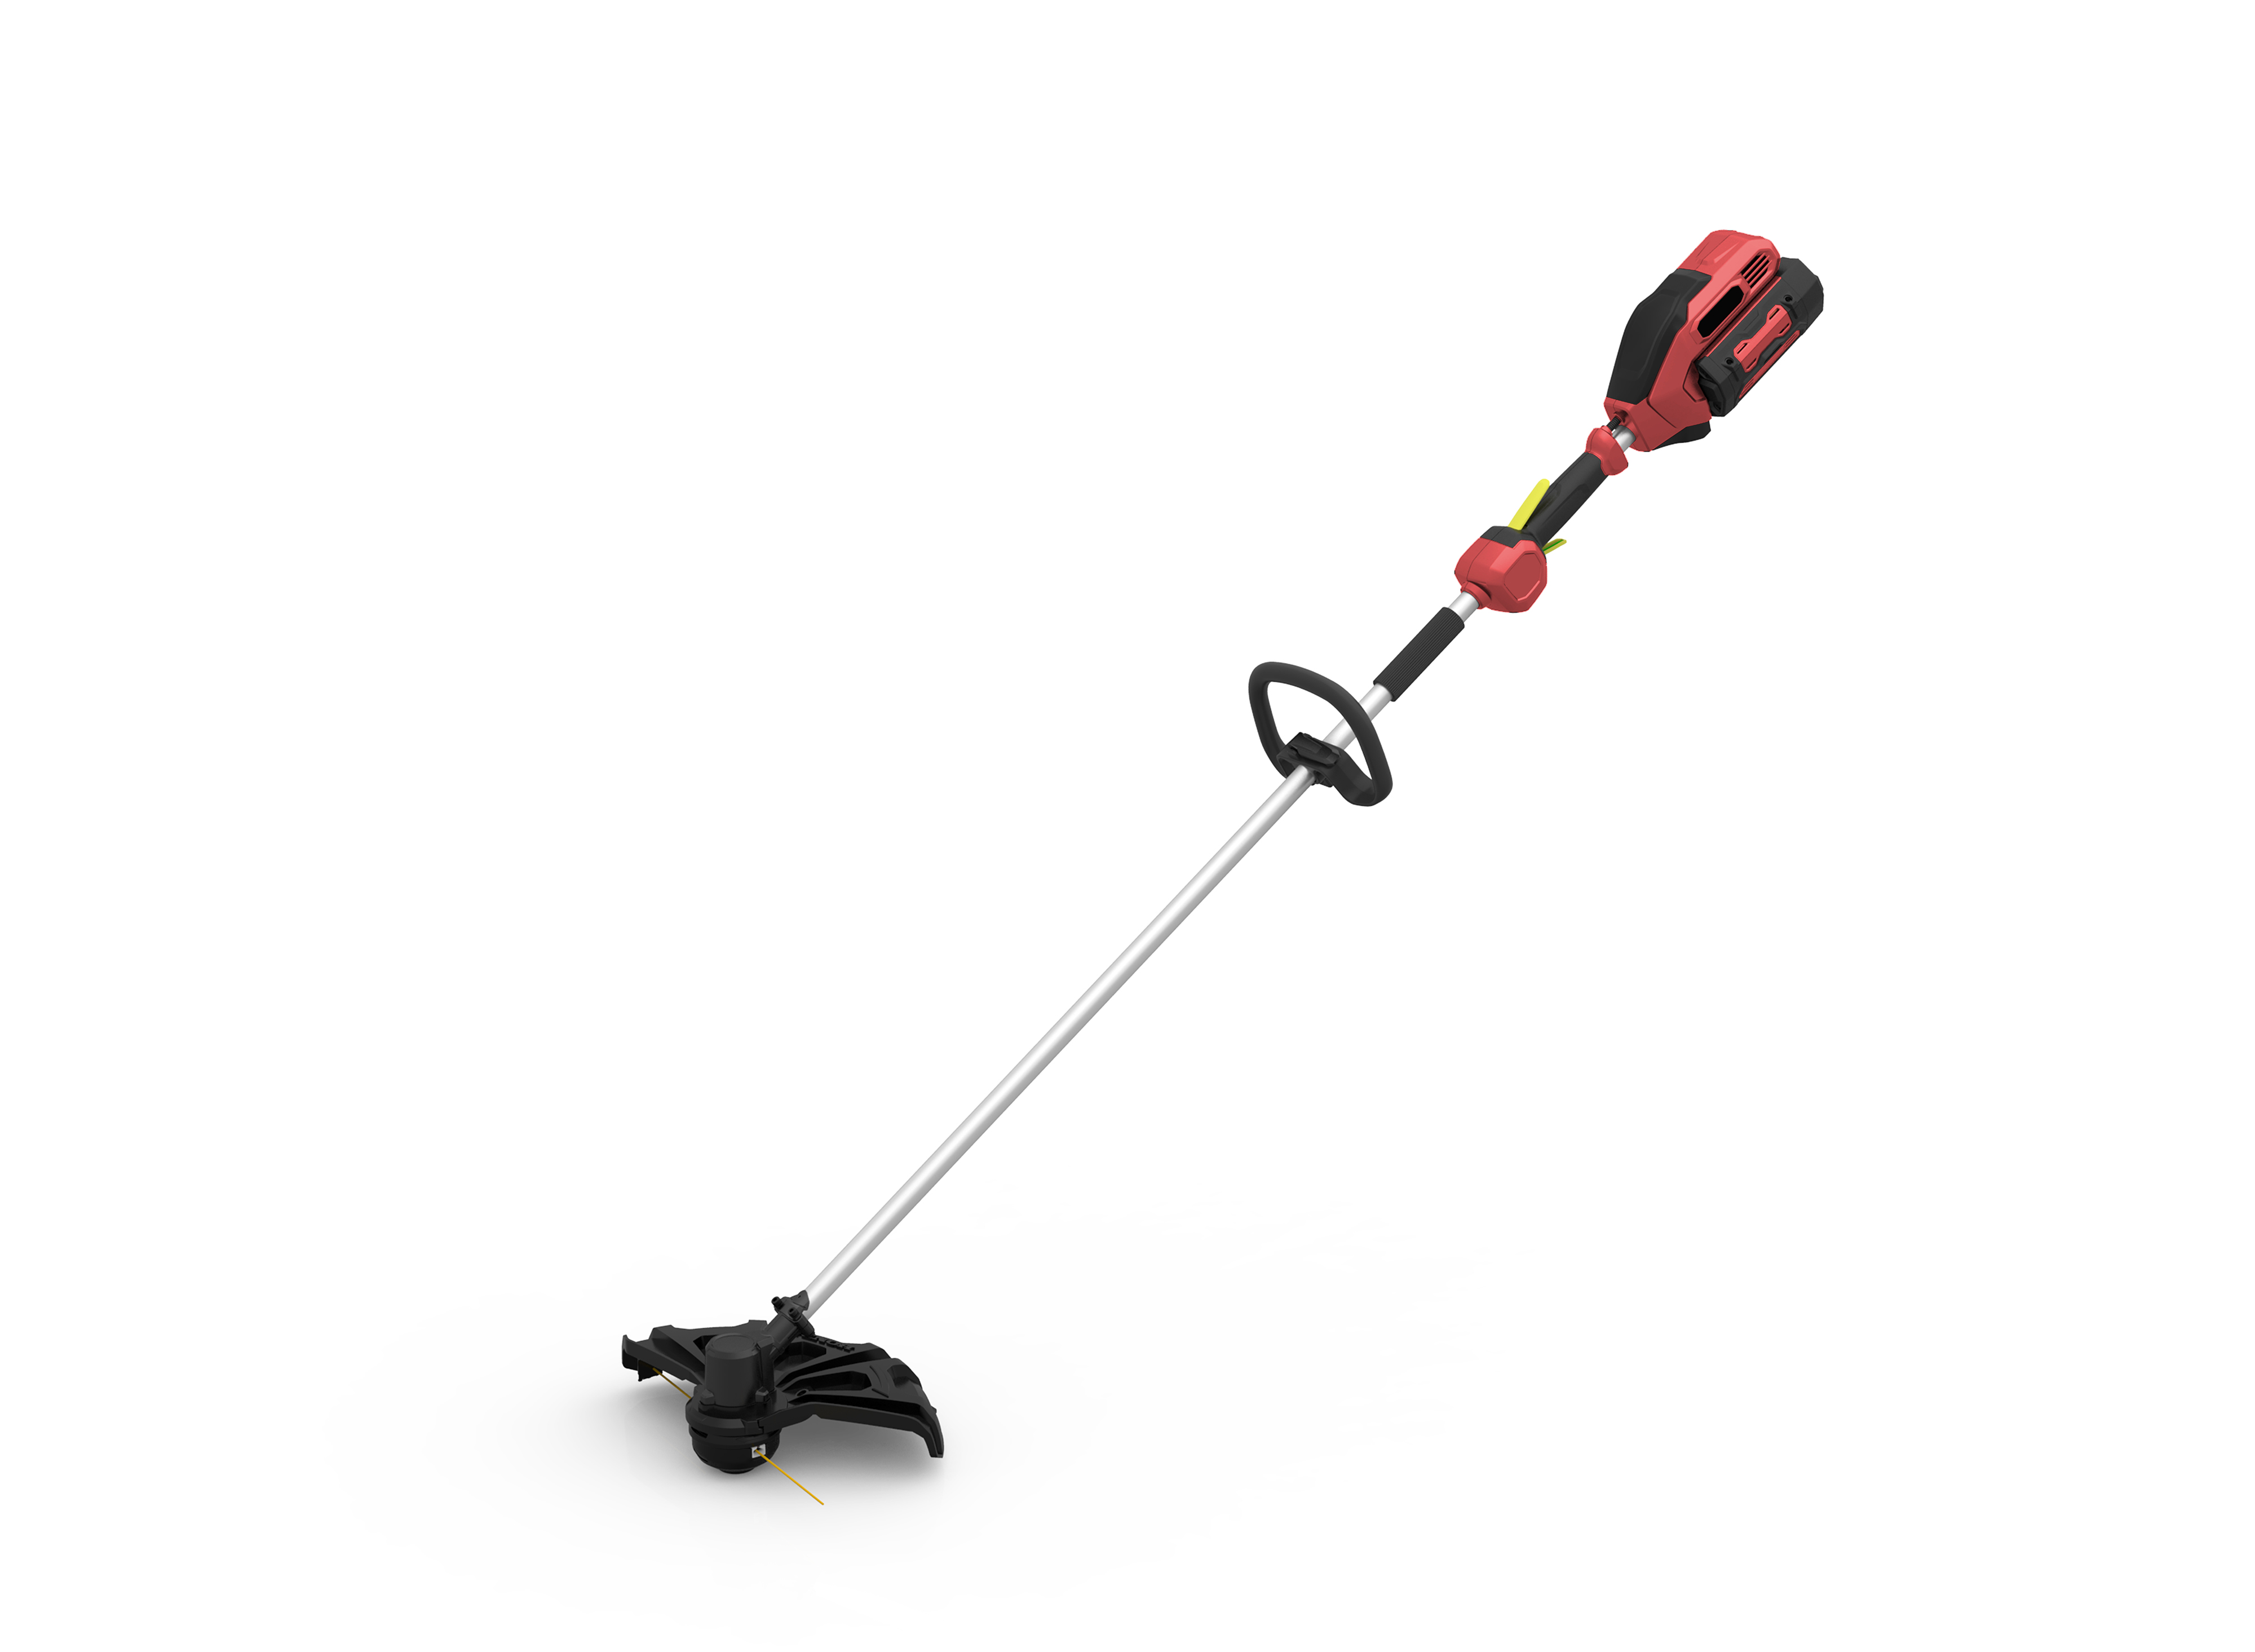 34366_Cordless_Lawn_Trimmer_01_ORIGINAL